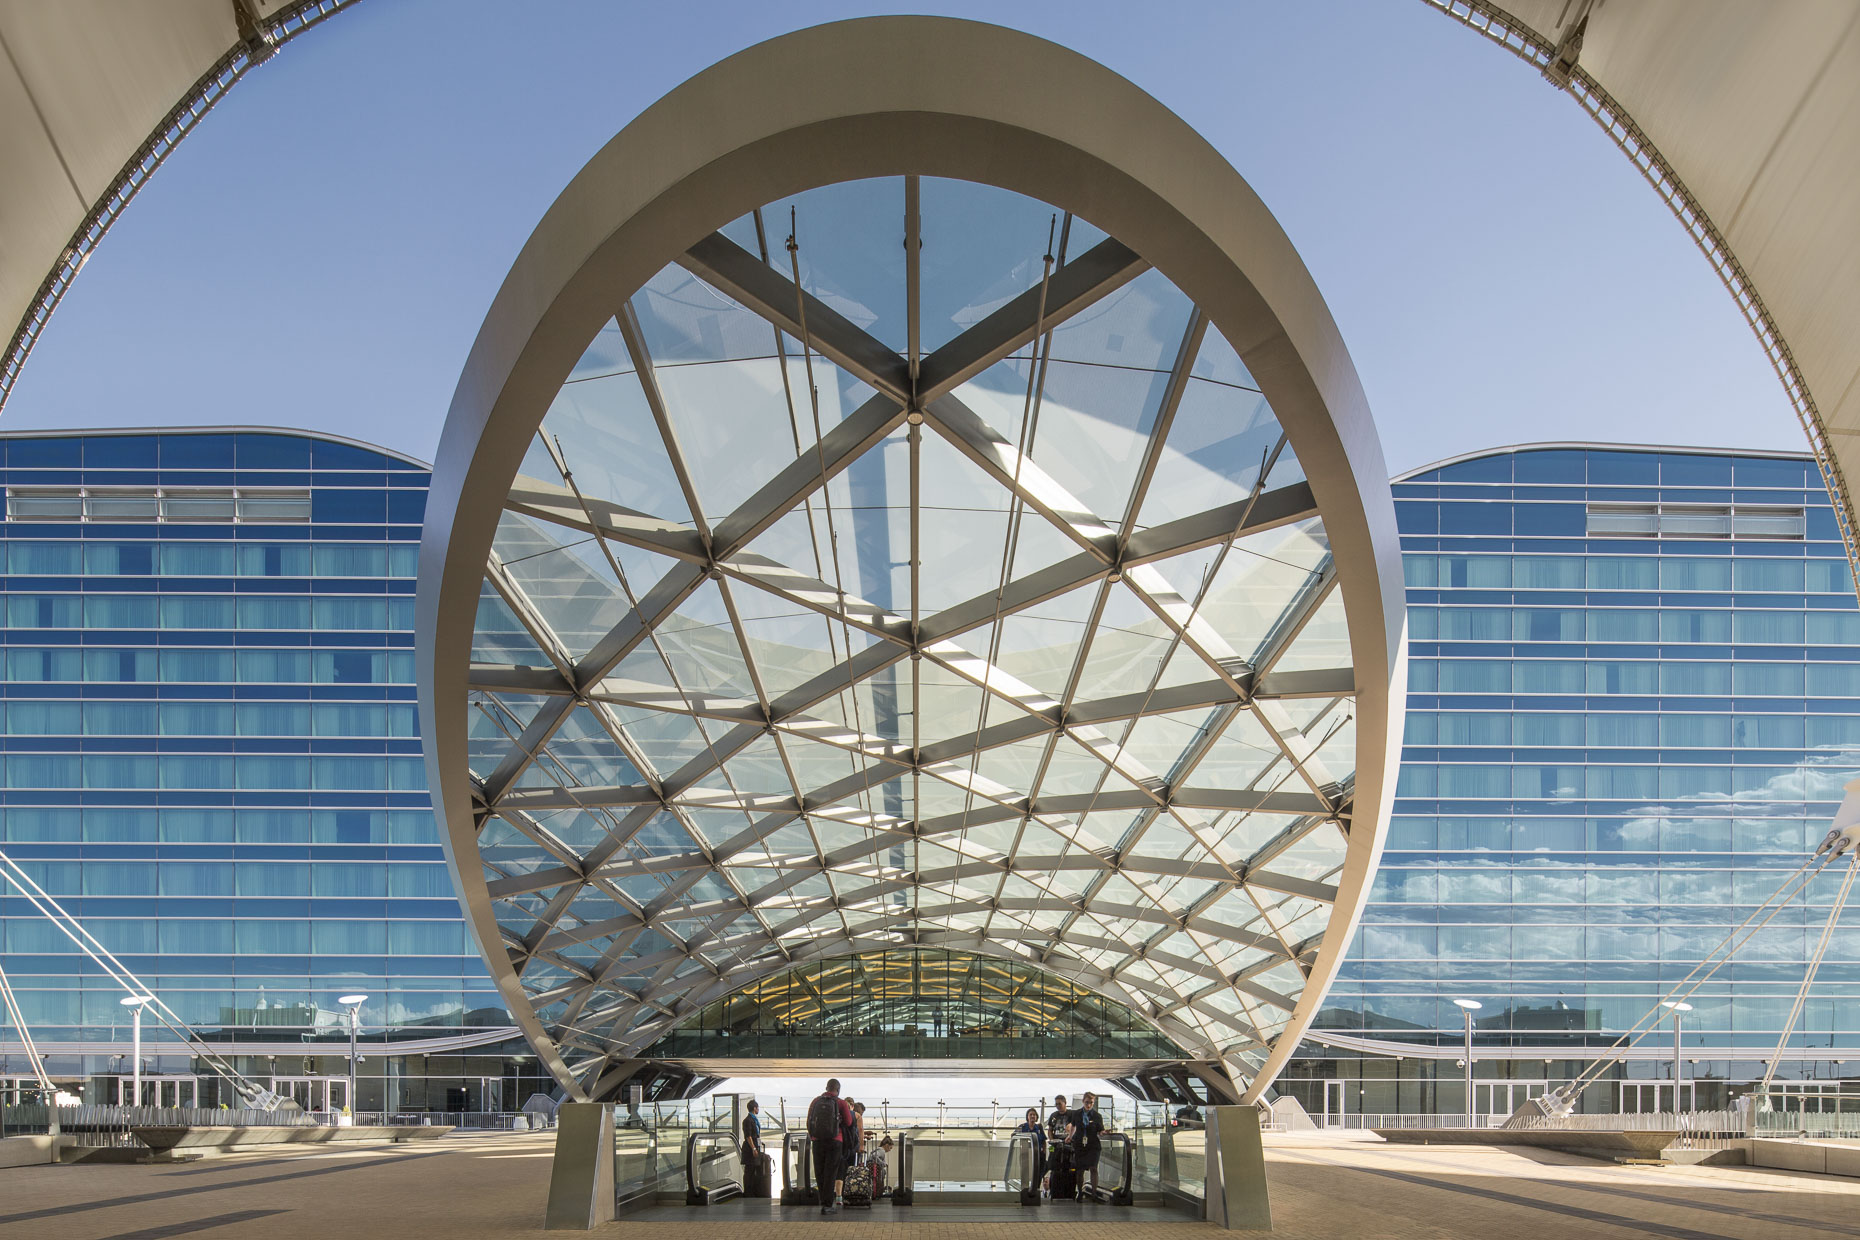 Westin Denver International Airport by HNTB photographed by Brad Feinknopf based in Columbus, Ohio